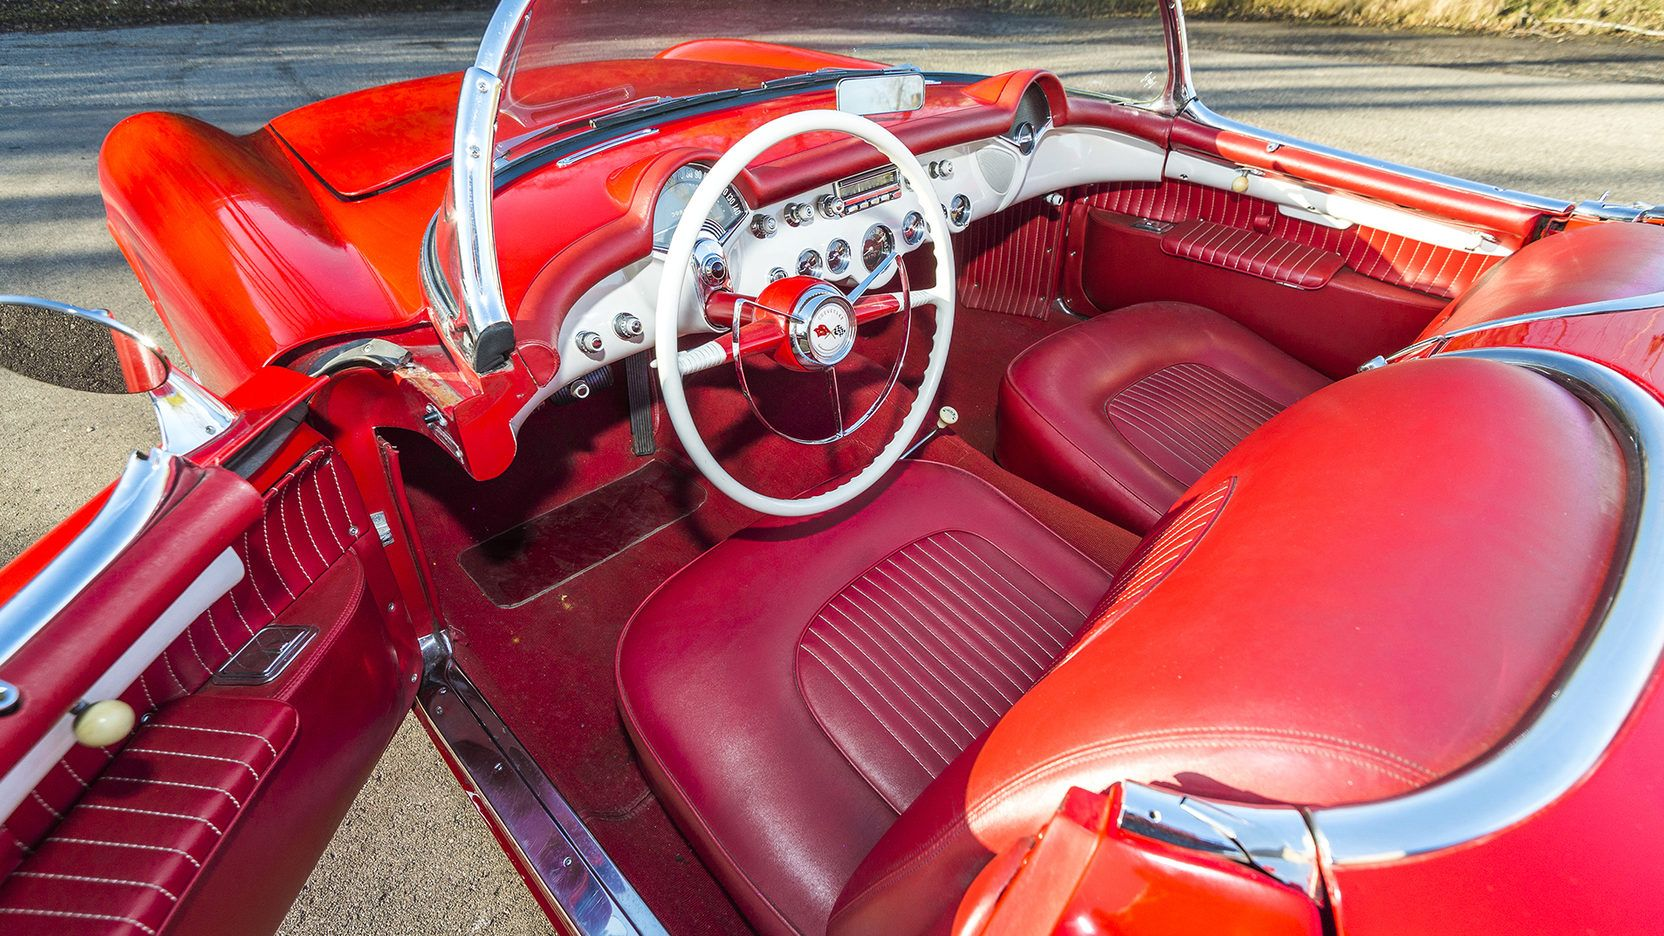 The beautiful interior in the 1954 Chevrolet Corvette Convertible (Lot L64.1) that will be auctioned at the Mecum Kissimmee Auction this January.